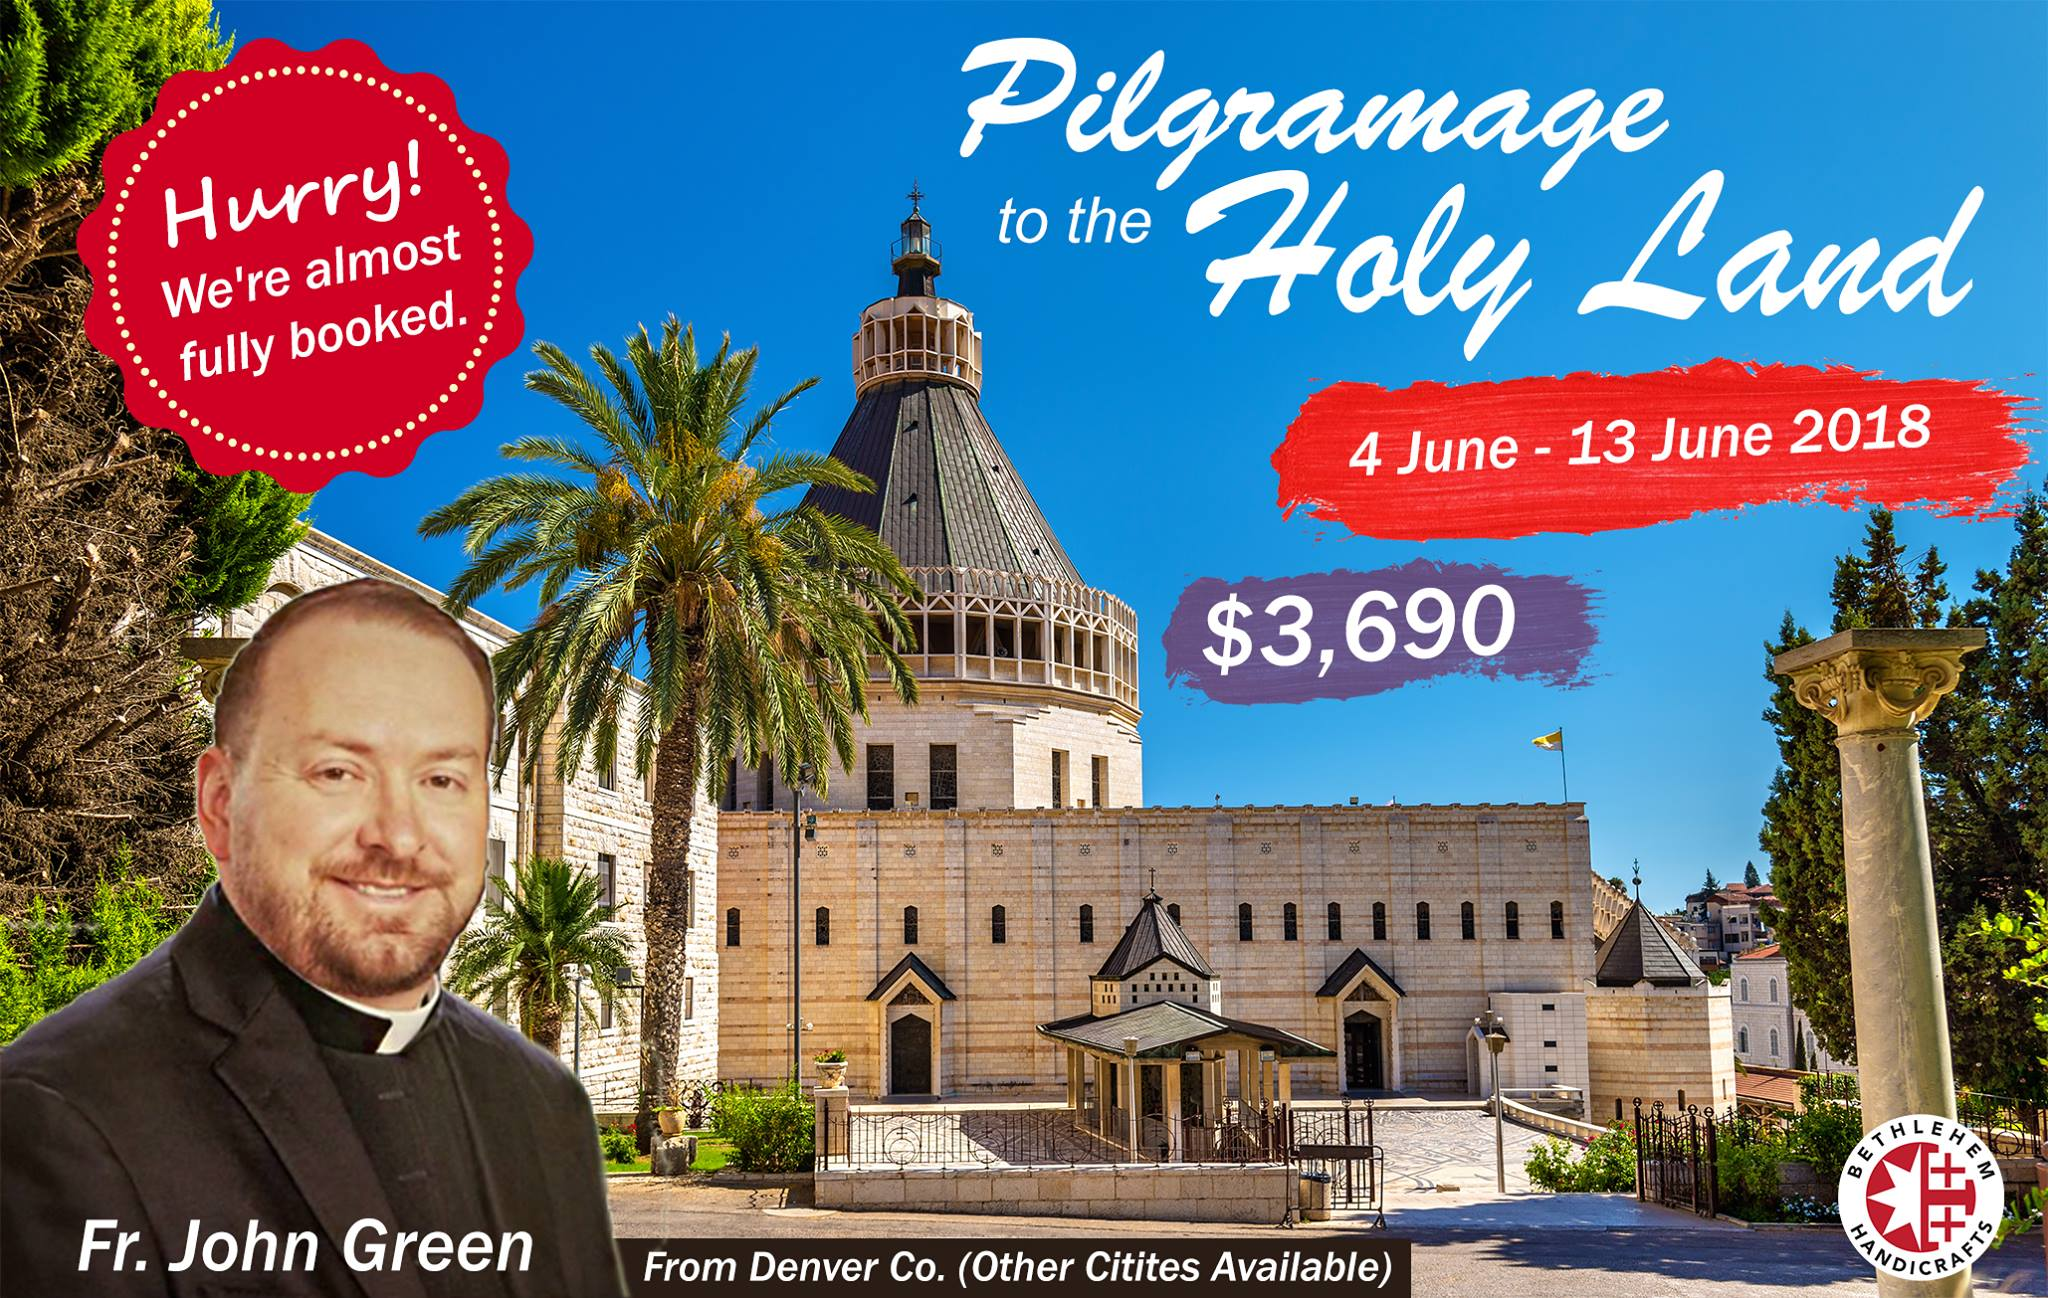 Pilgrimage to the Holy Land 2